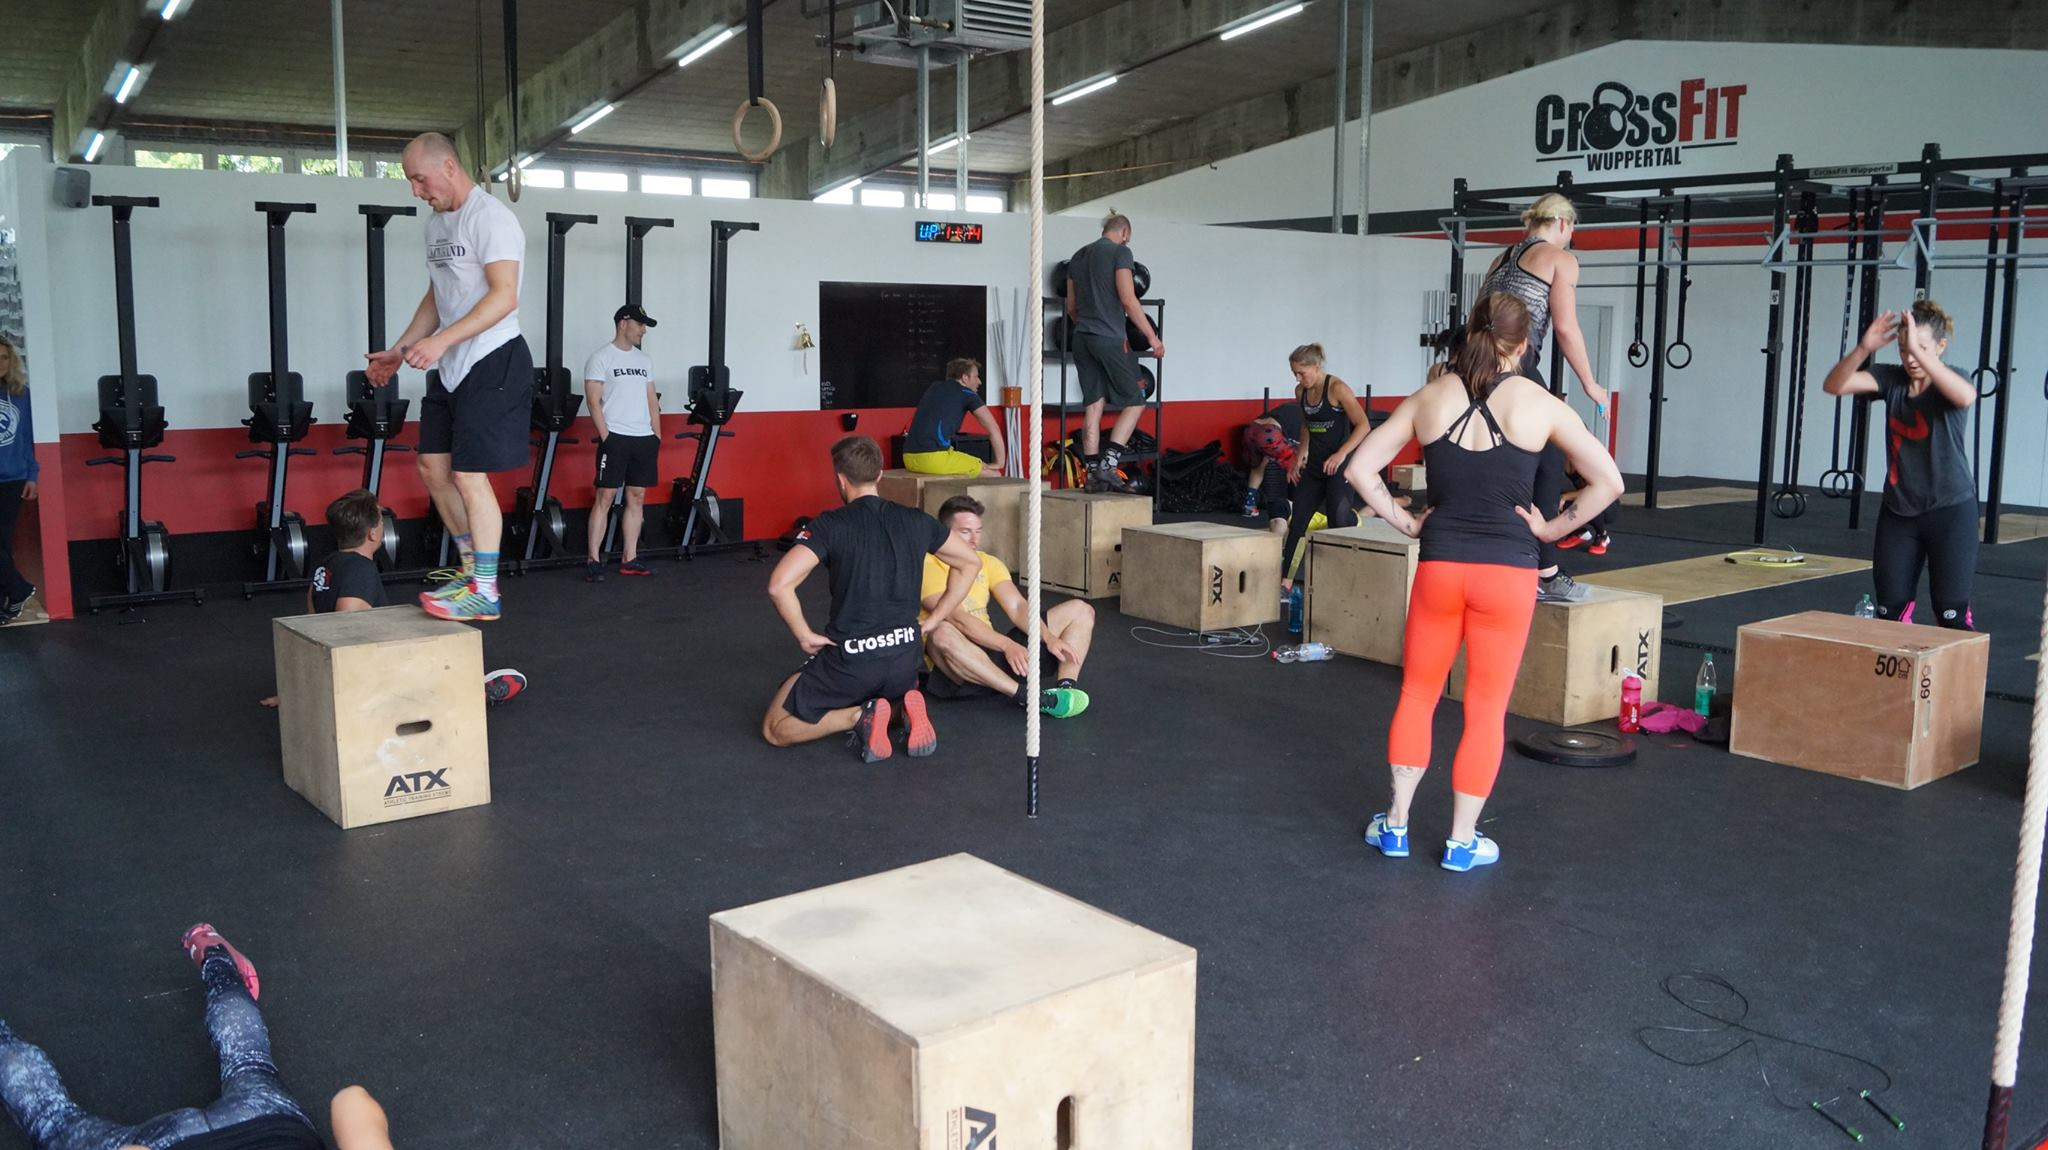 https://crossfitwuppertal.de/wp-content/uploads/2016/08/wod.jpg